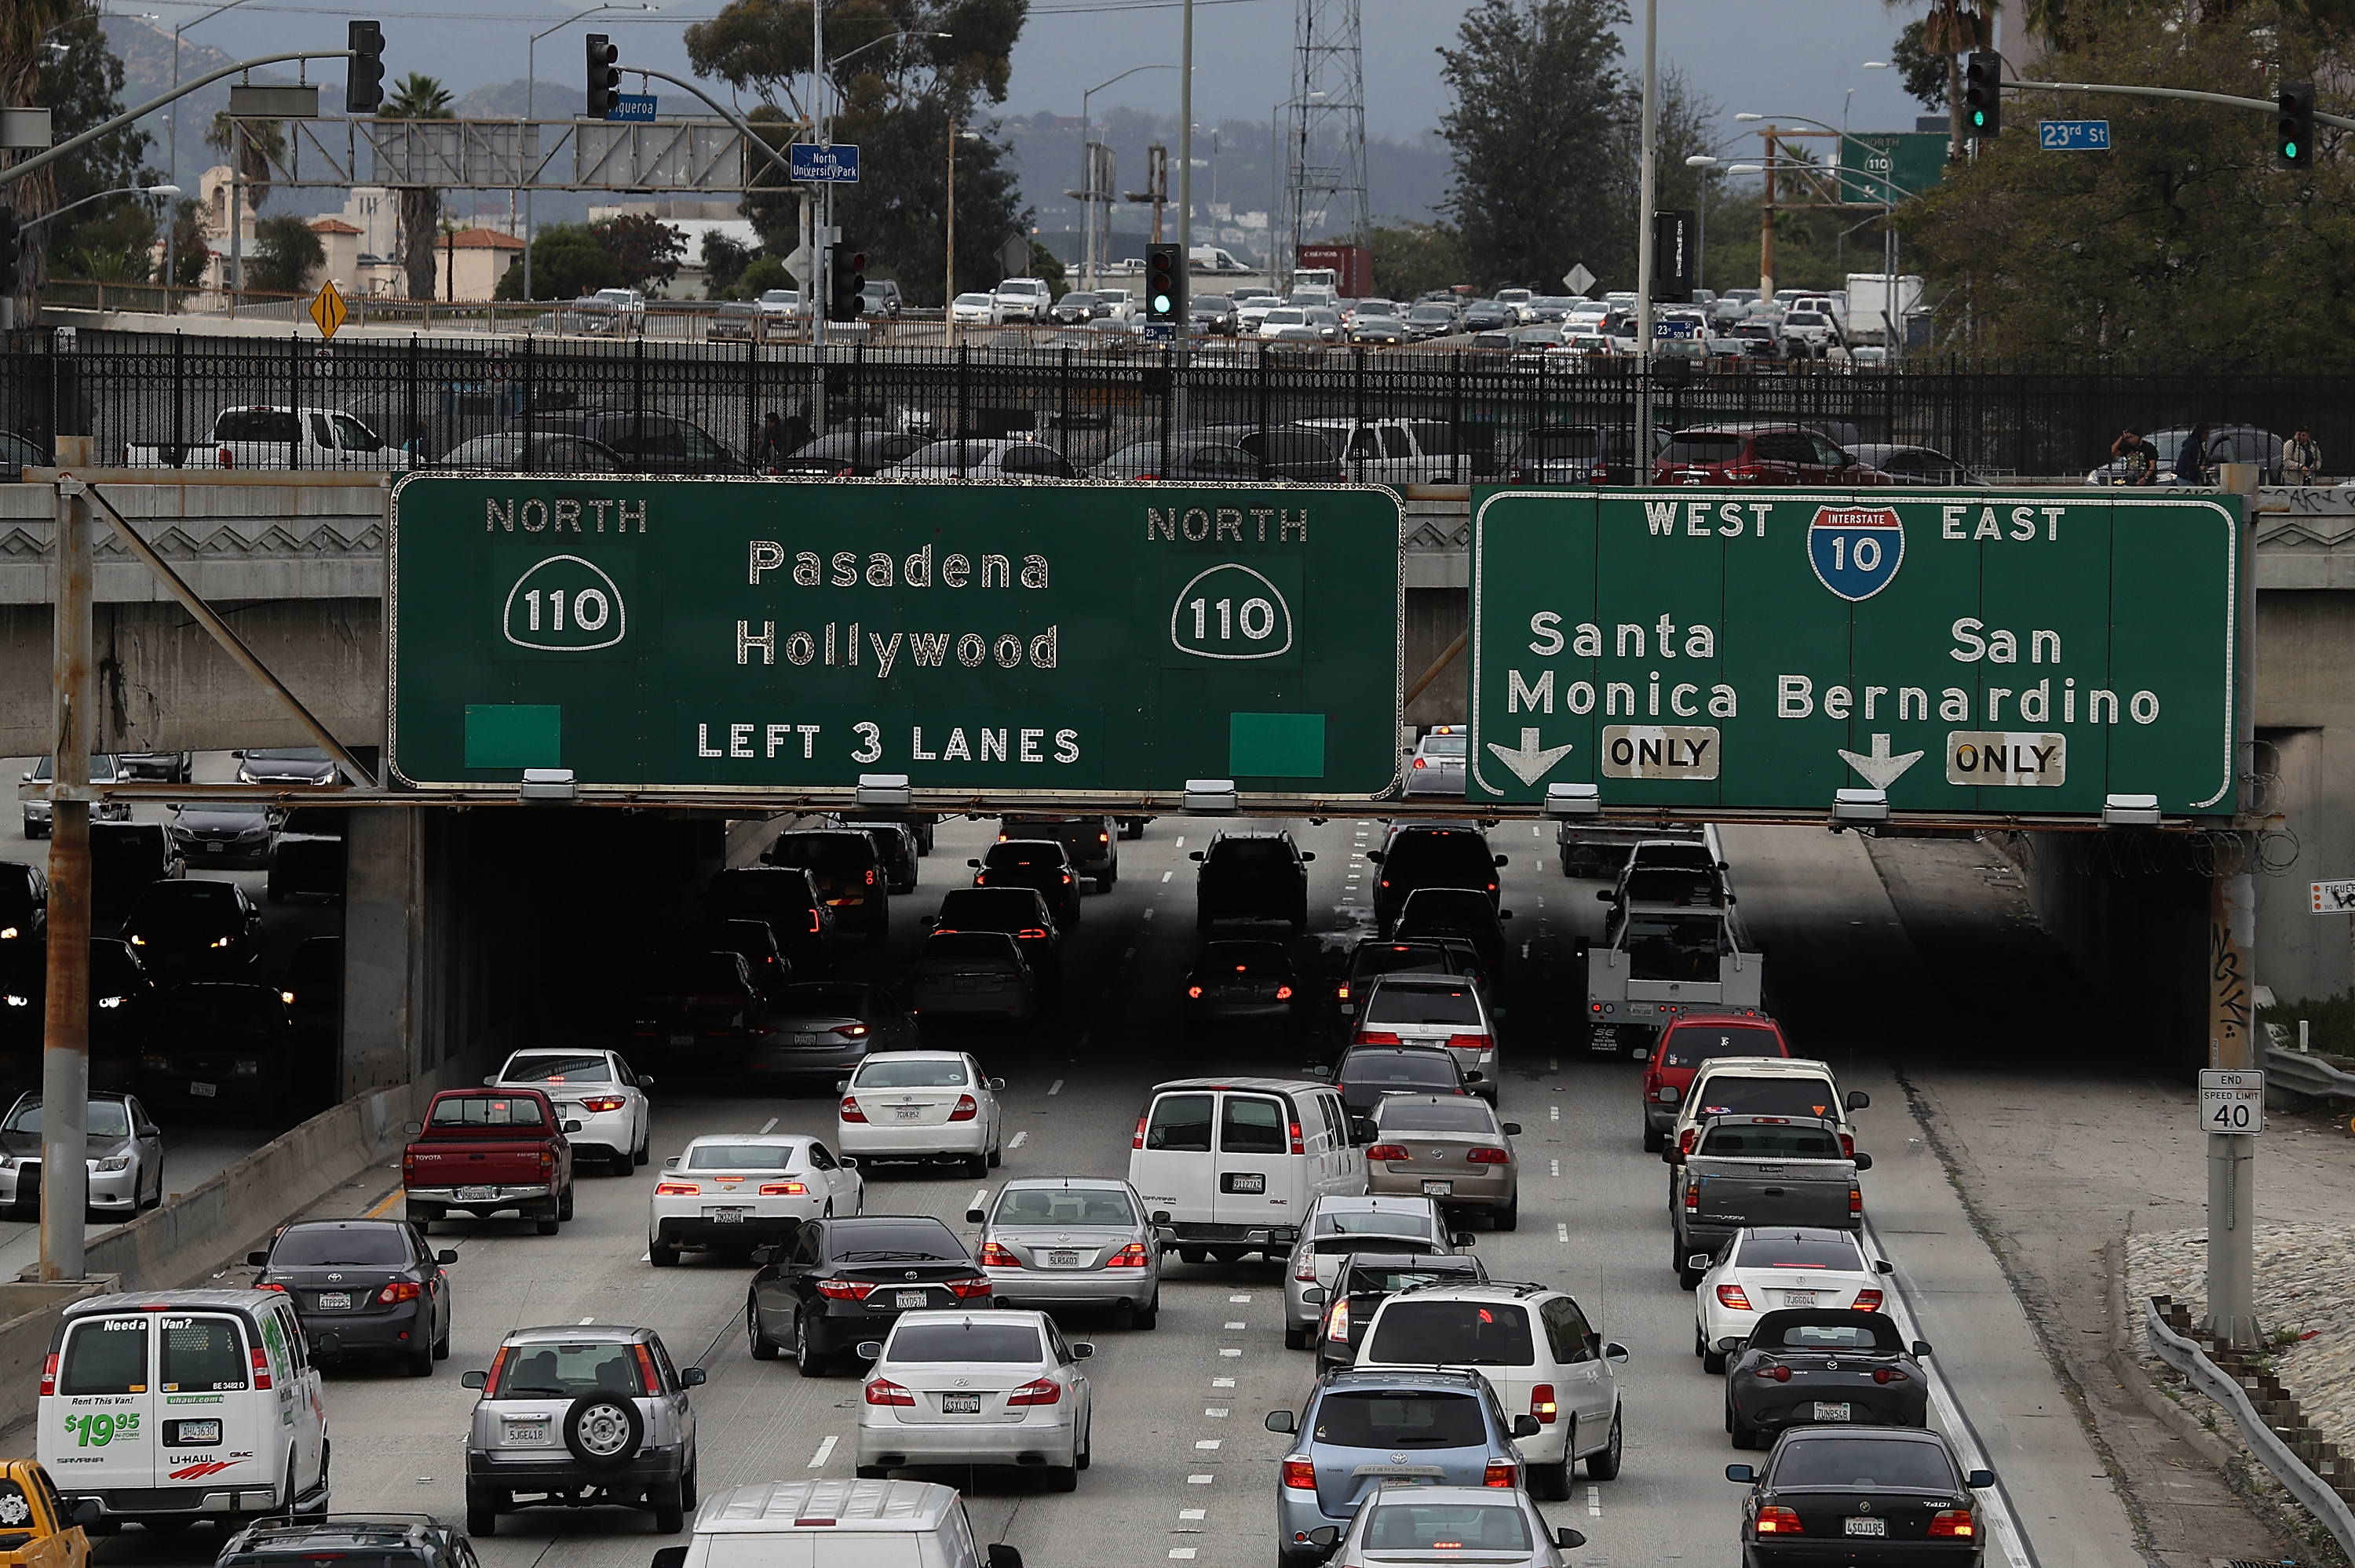 Cars travel along State Route 110 in Los Angeles, California.